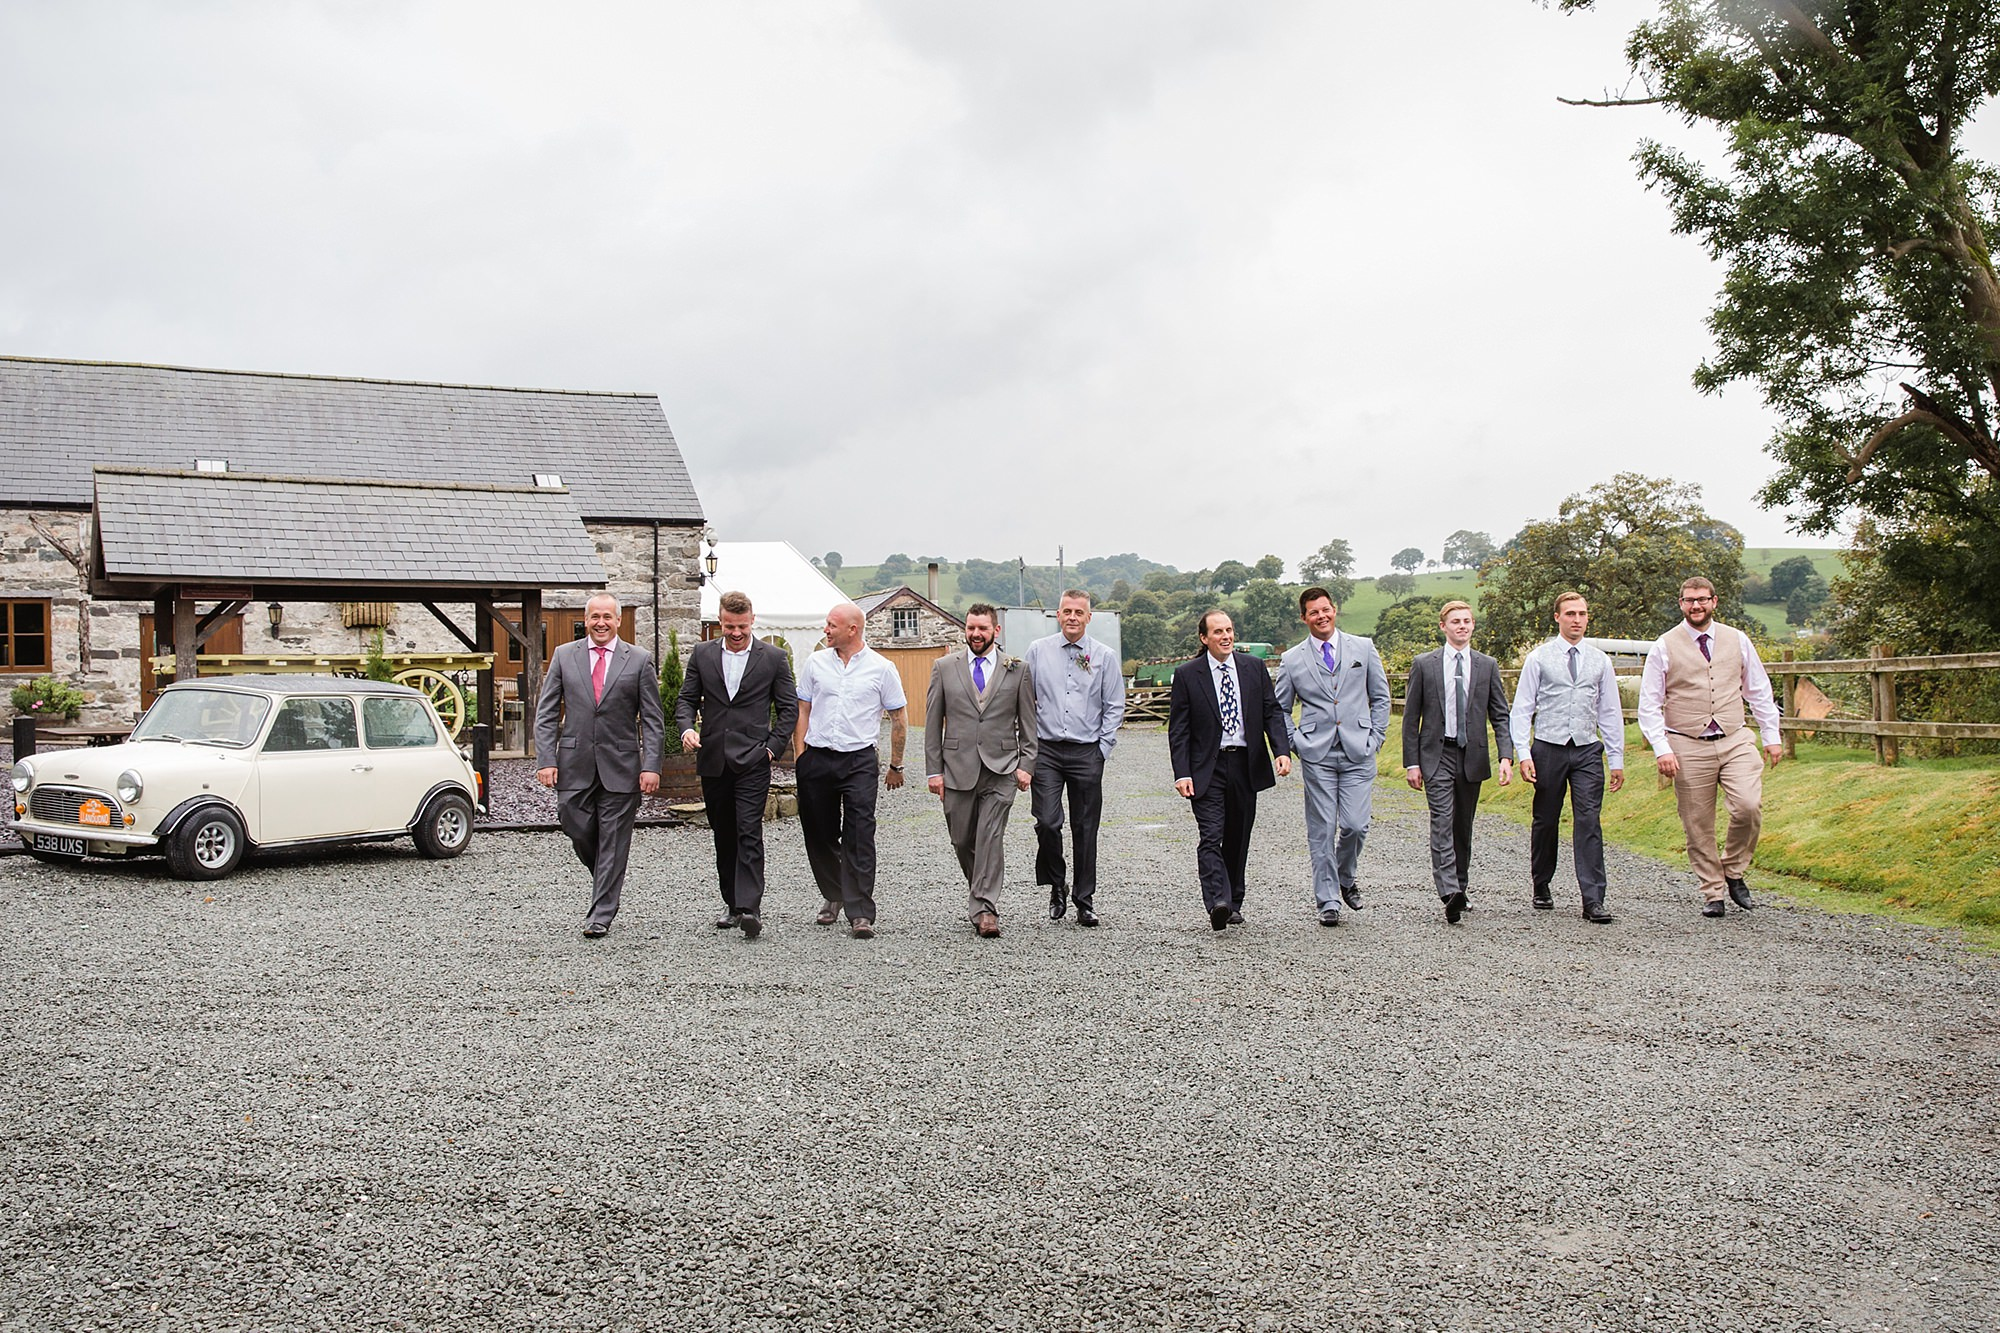 A fun wedding at Plas Isaf - groom and friends walking shot